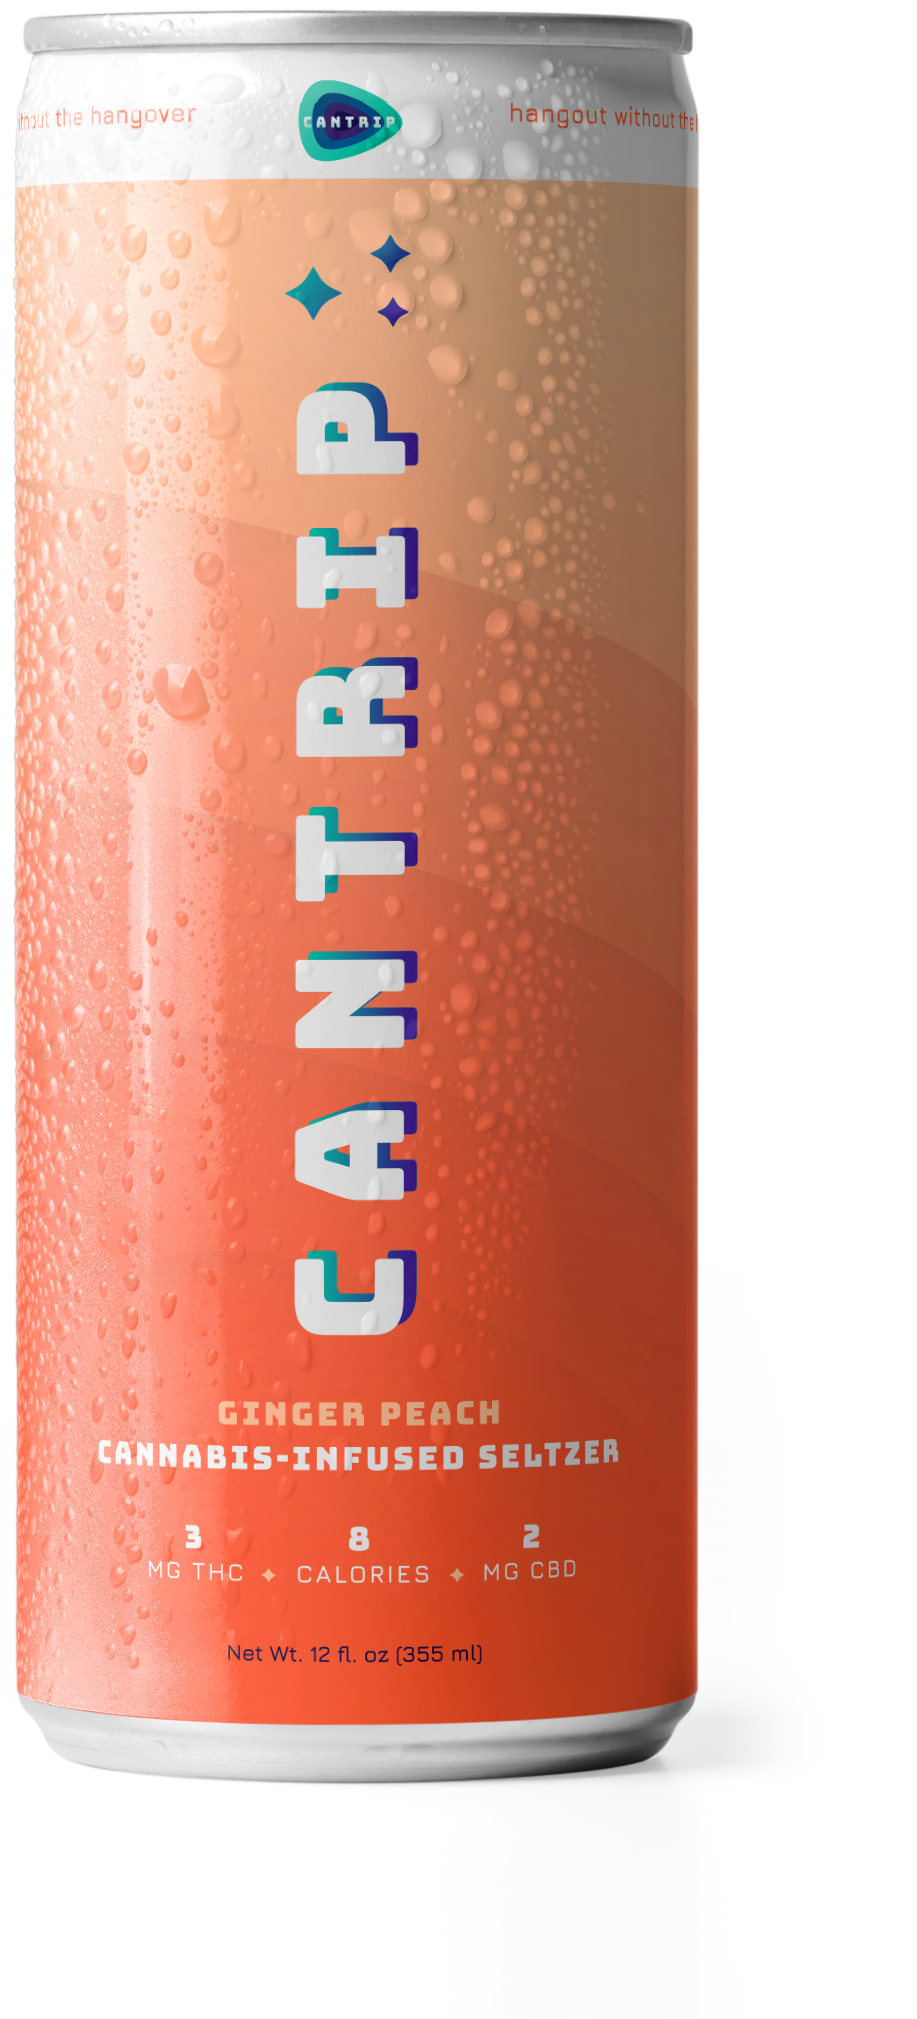 The Cantrip cannabis-infused seltzer Ginger Peach can.